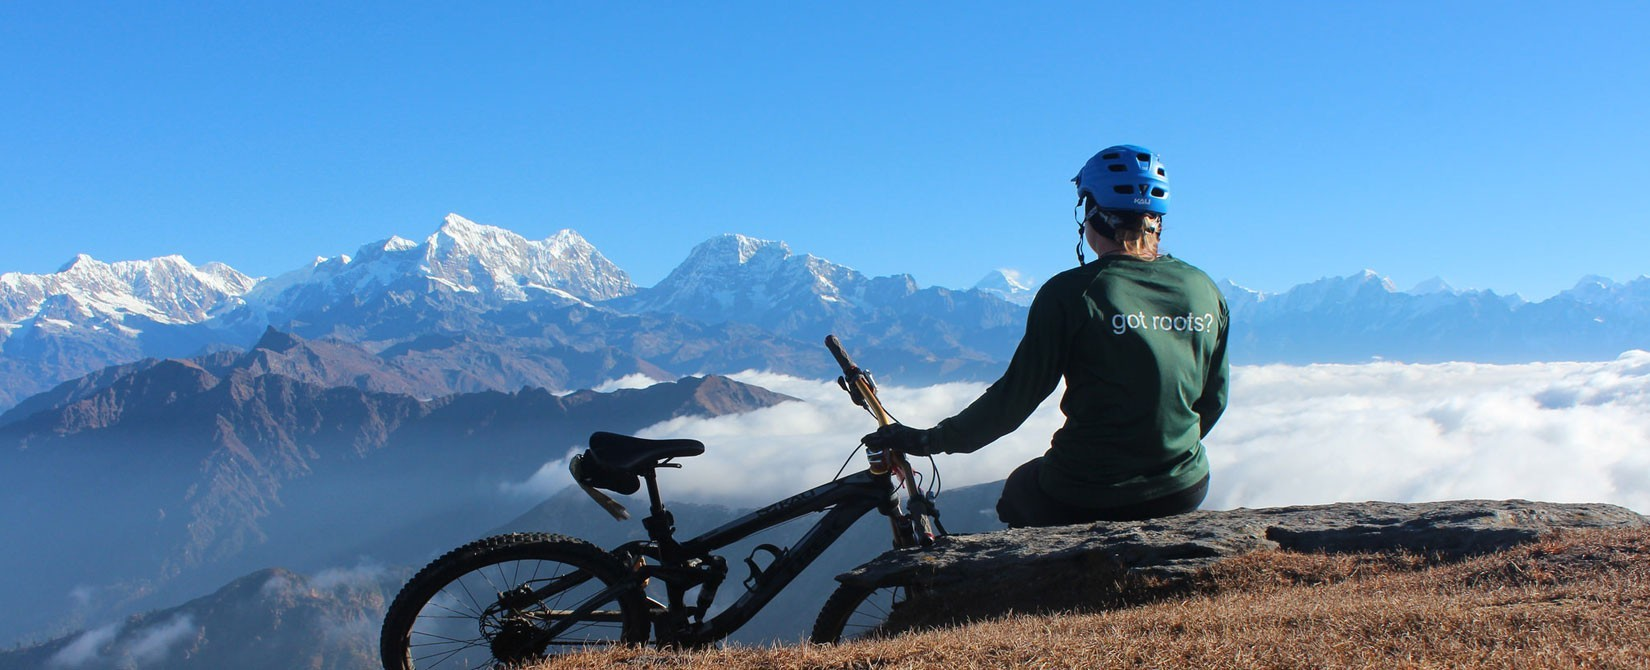 Mountain biking in the lap of Himalayas